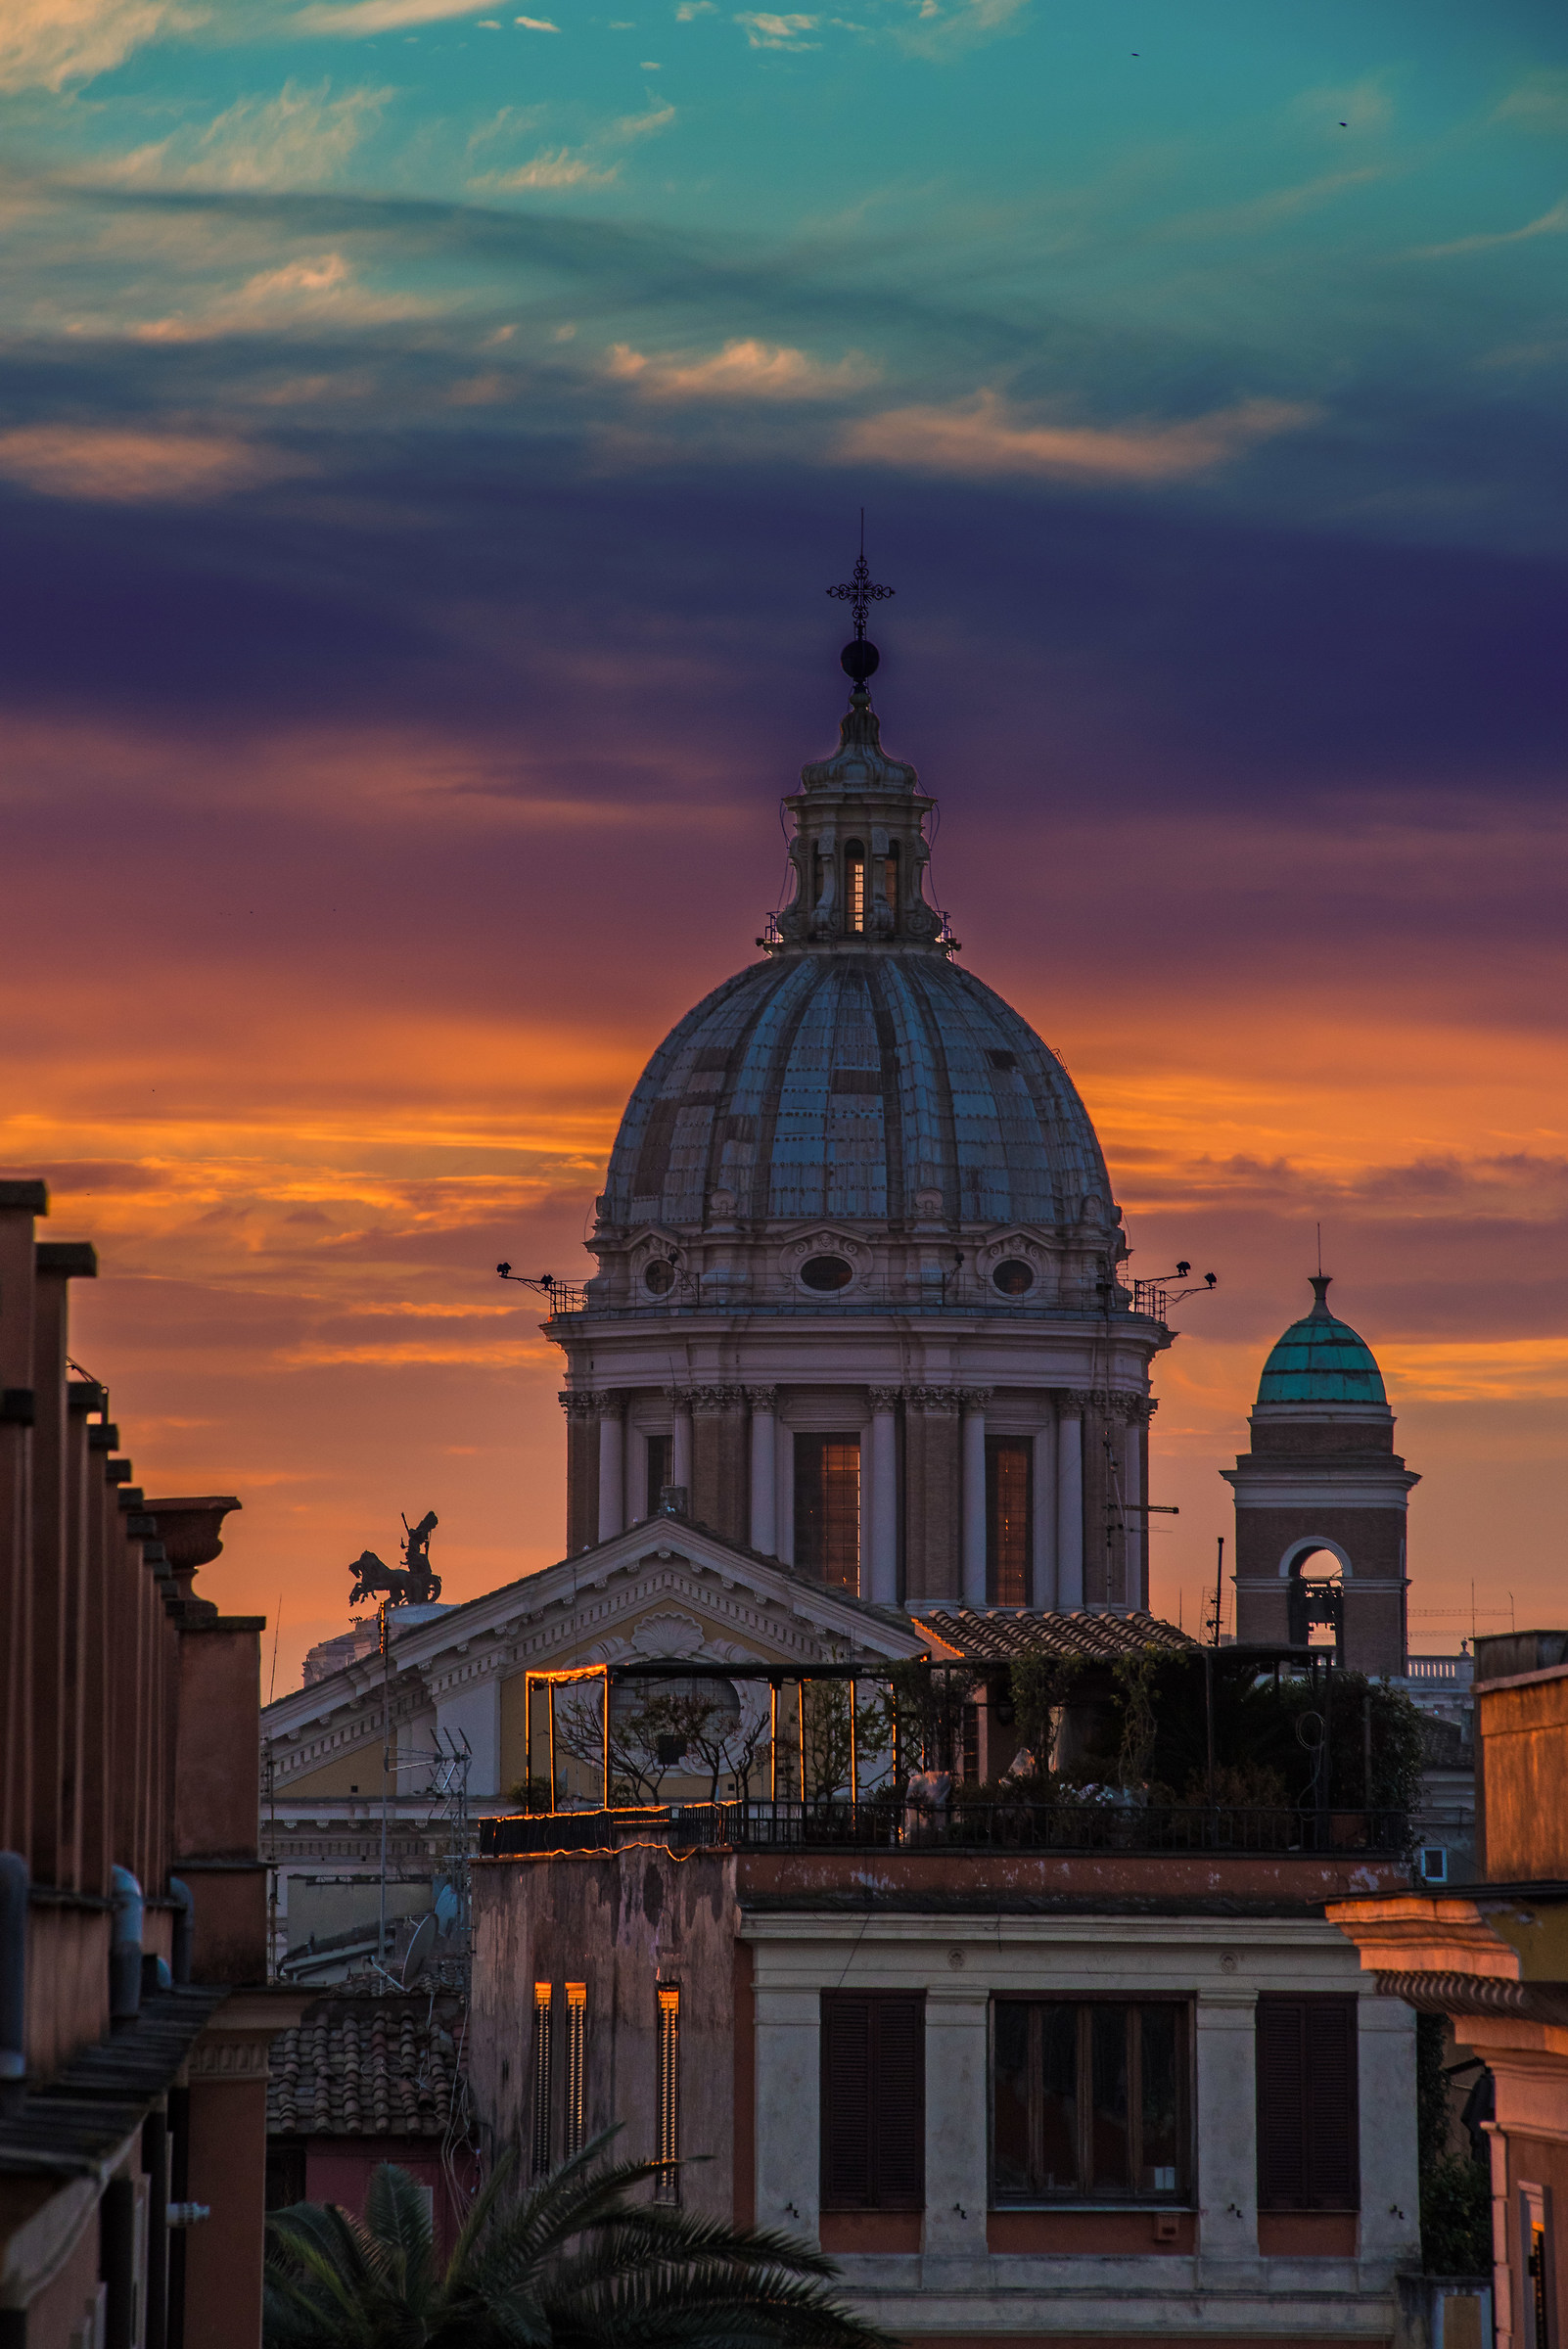 sunsets in Rome ......